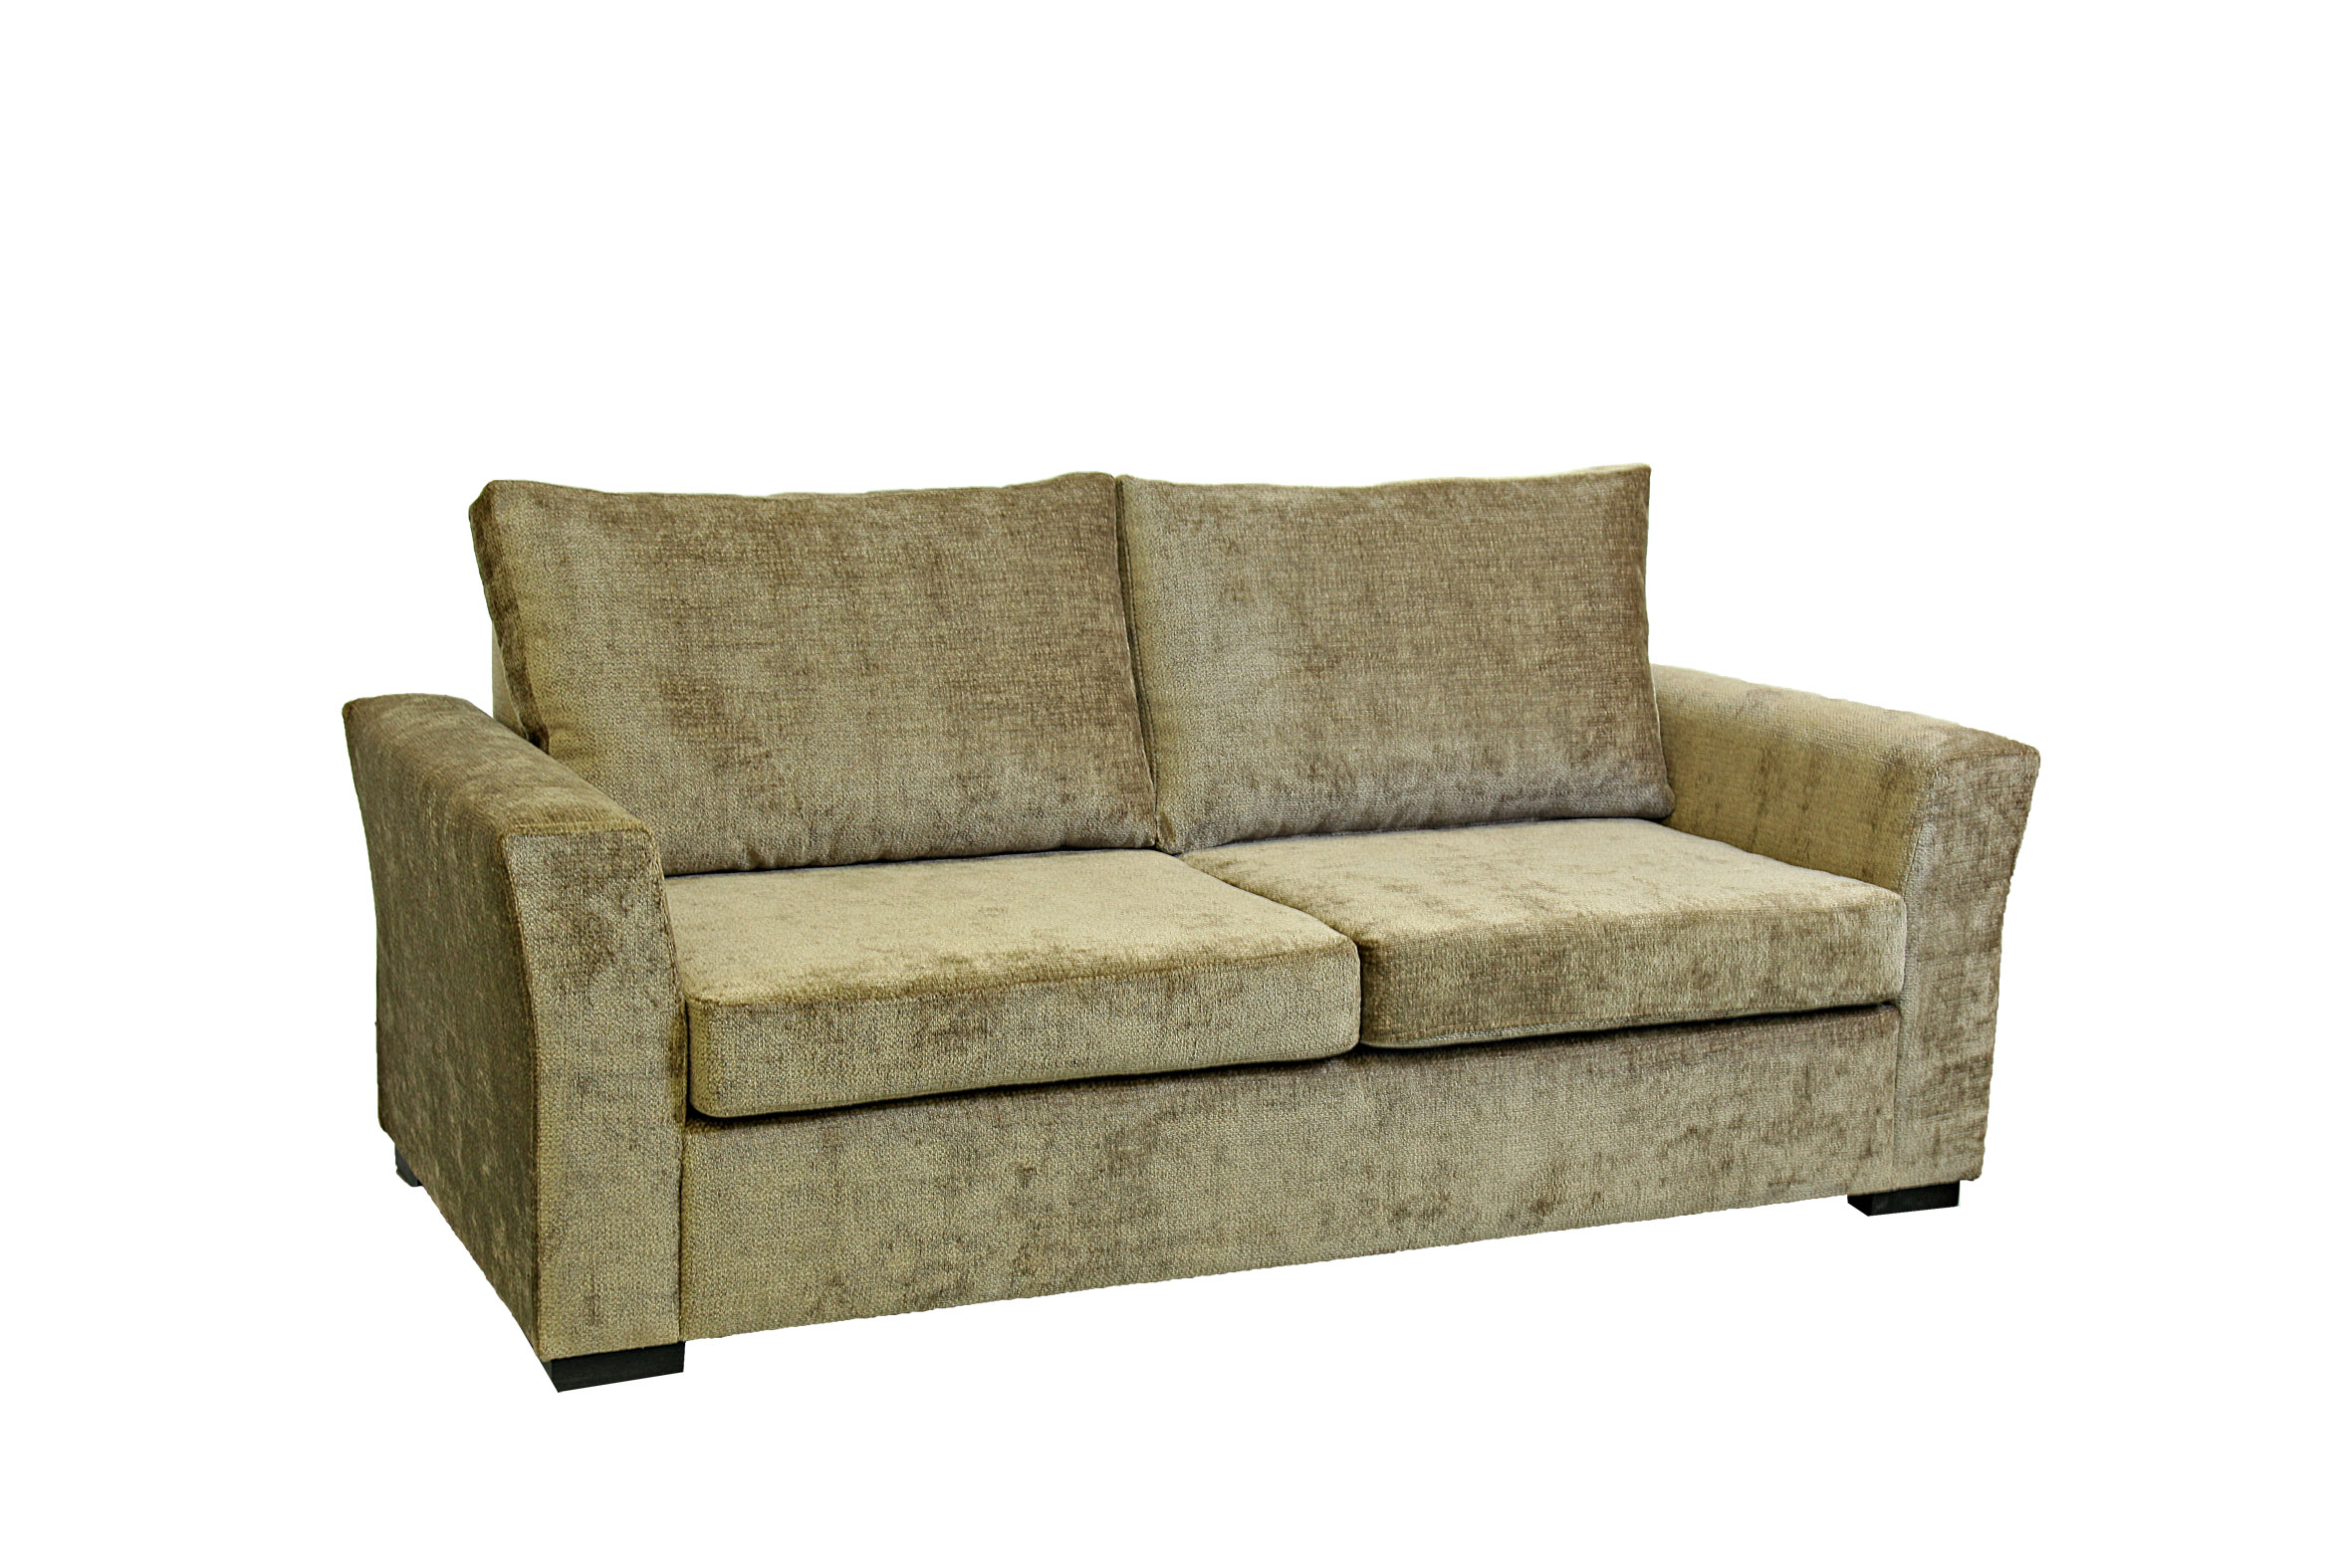 sofa furniture manufacturers. sofabed sofa furniture manufacturers e